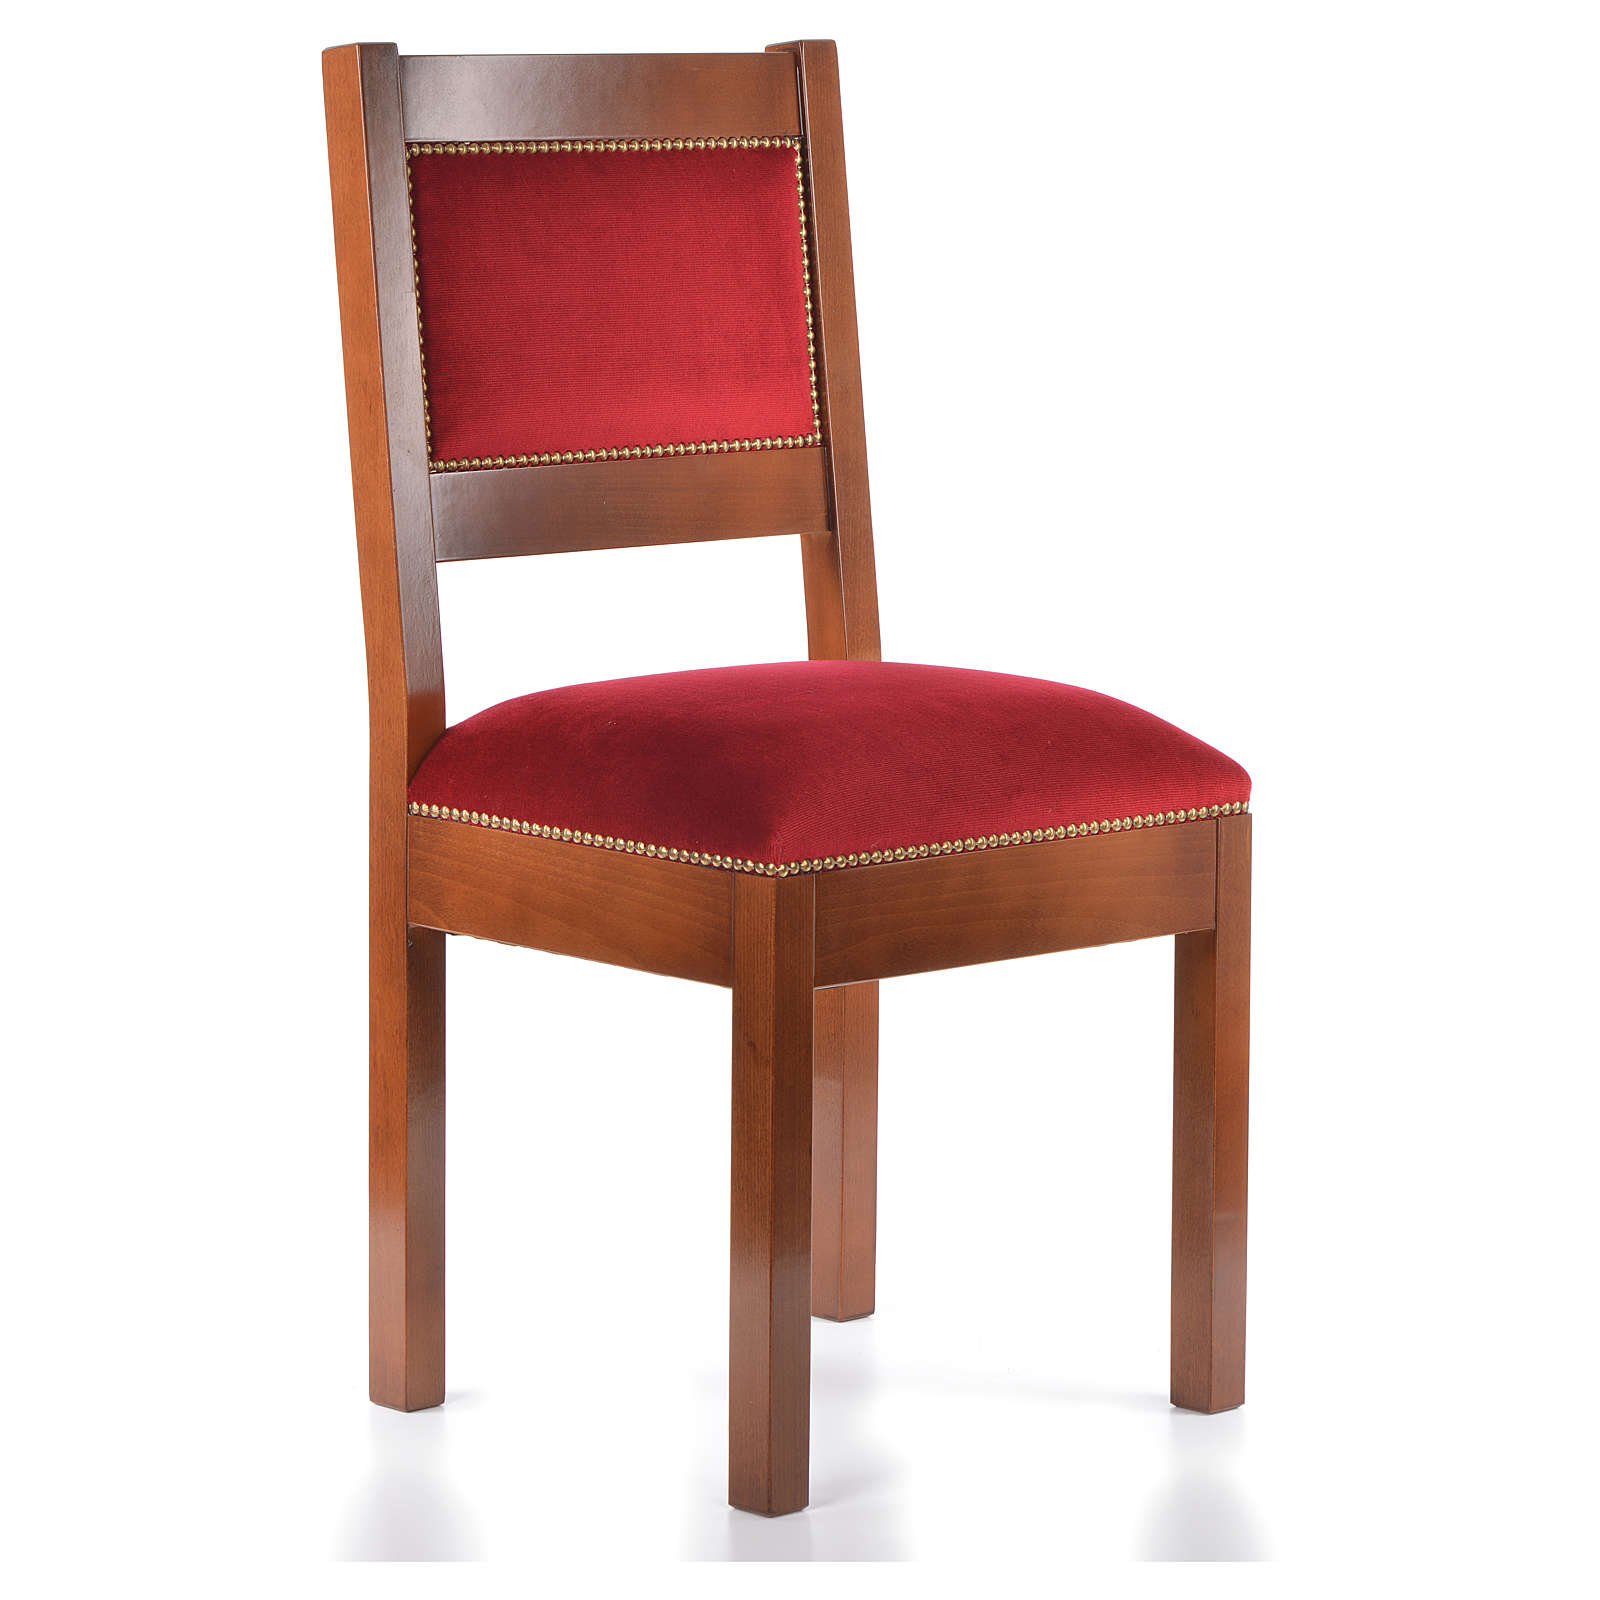 Chaise moderne noyer style Assise 4